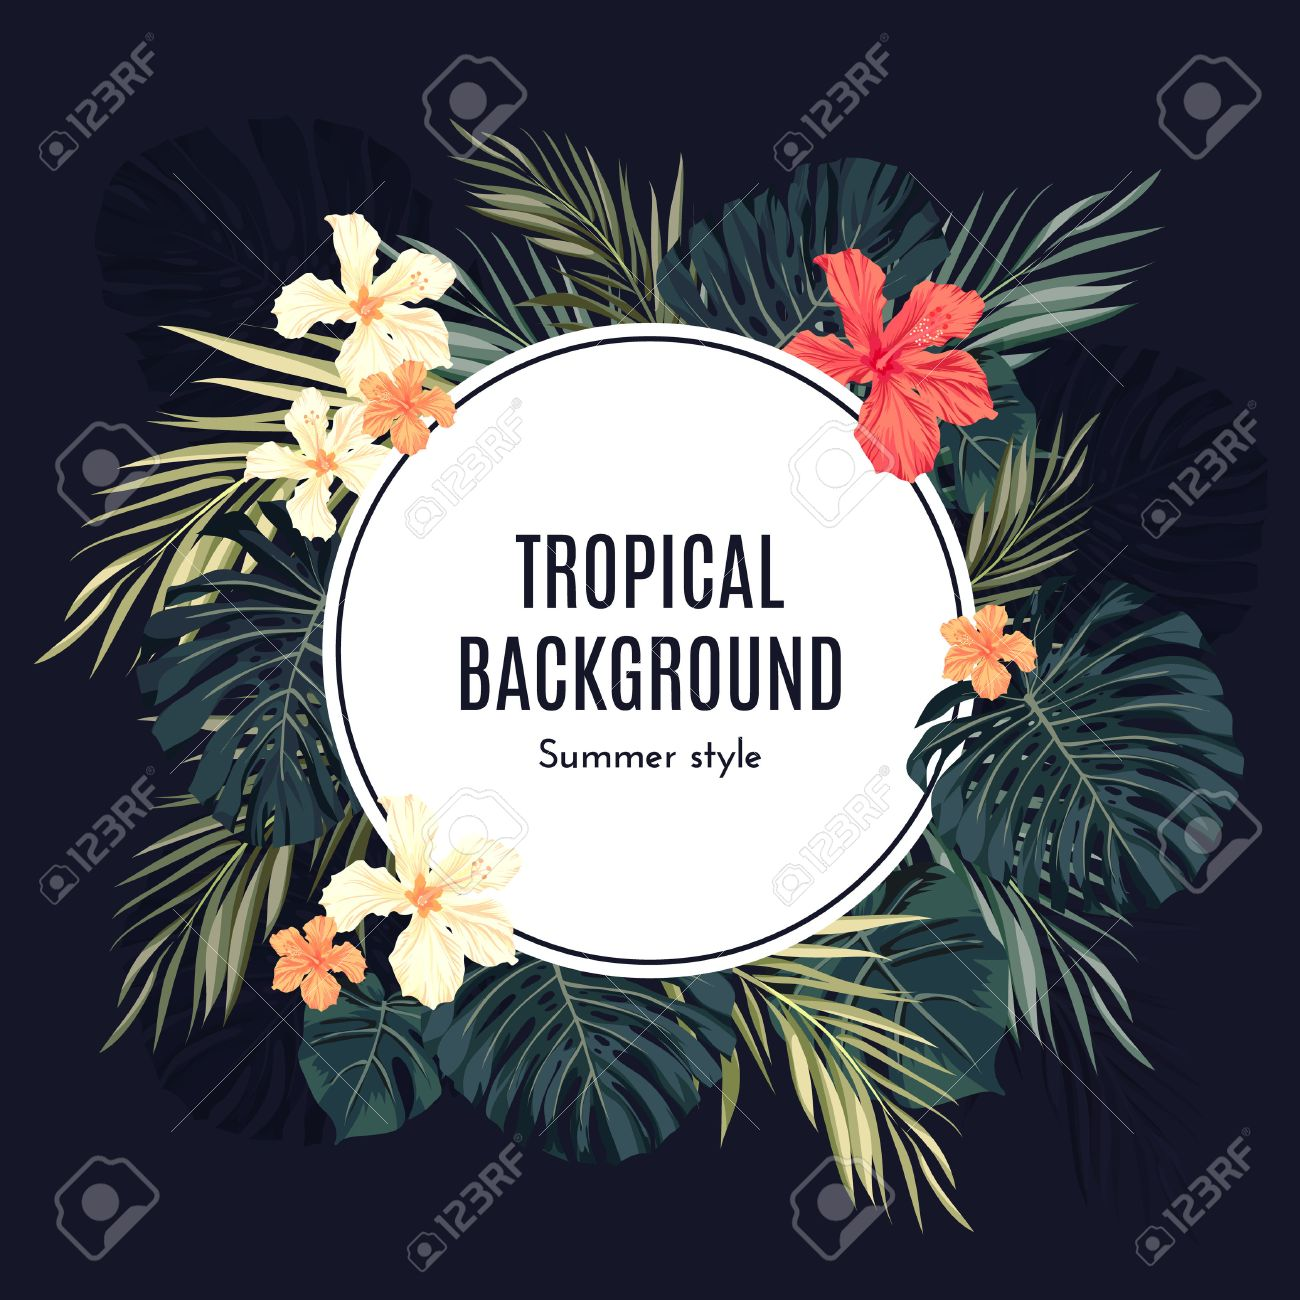 Summer tropical hawaiian background or flyer with jungle palm tree leaves and exotic flowers, space for text, vector illustration. - 41251382